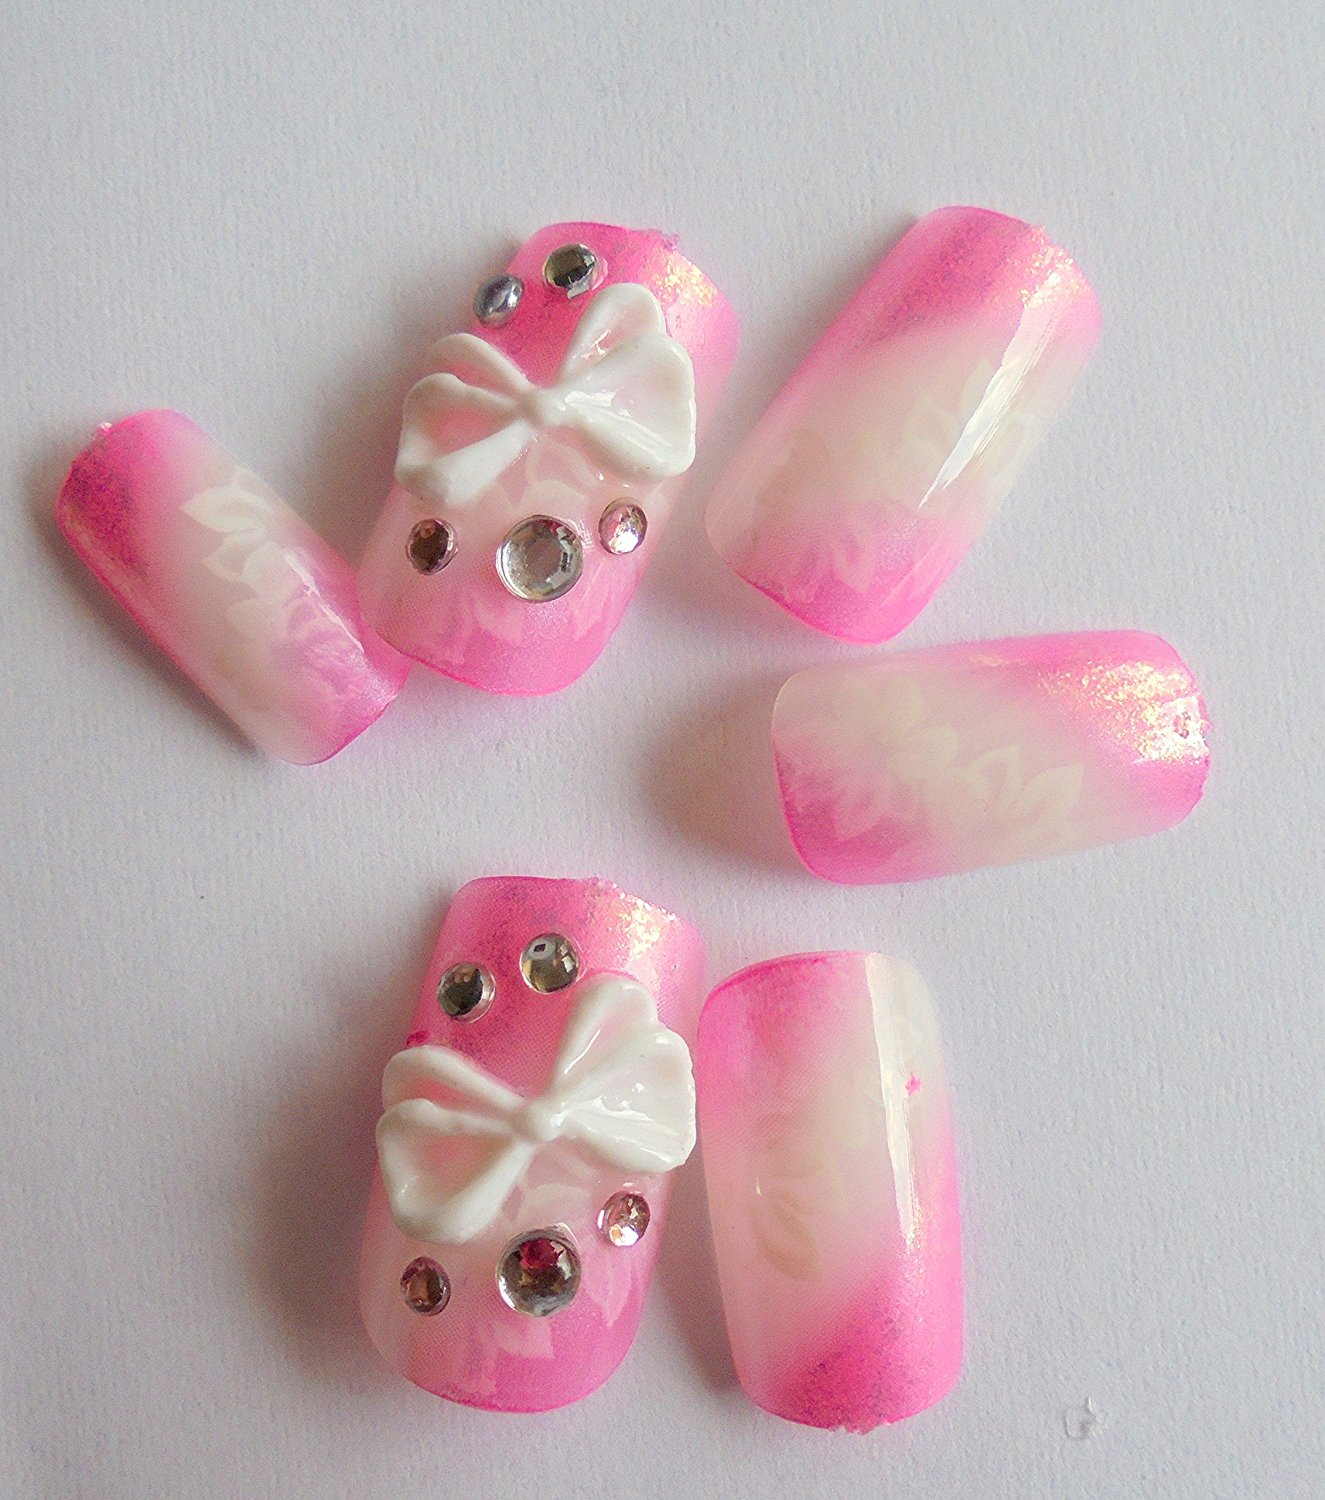 Cheap Ivory Nails, find Ivory Nails deals on line at Alibaba.com